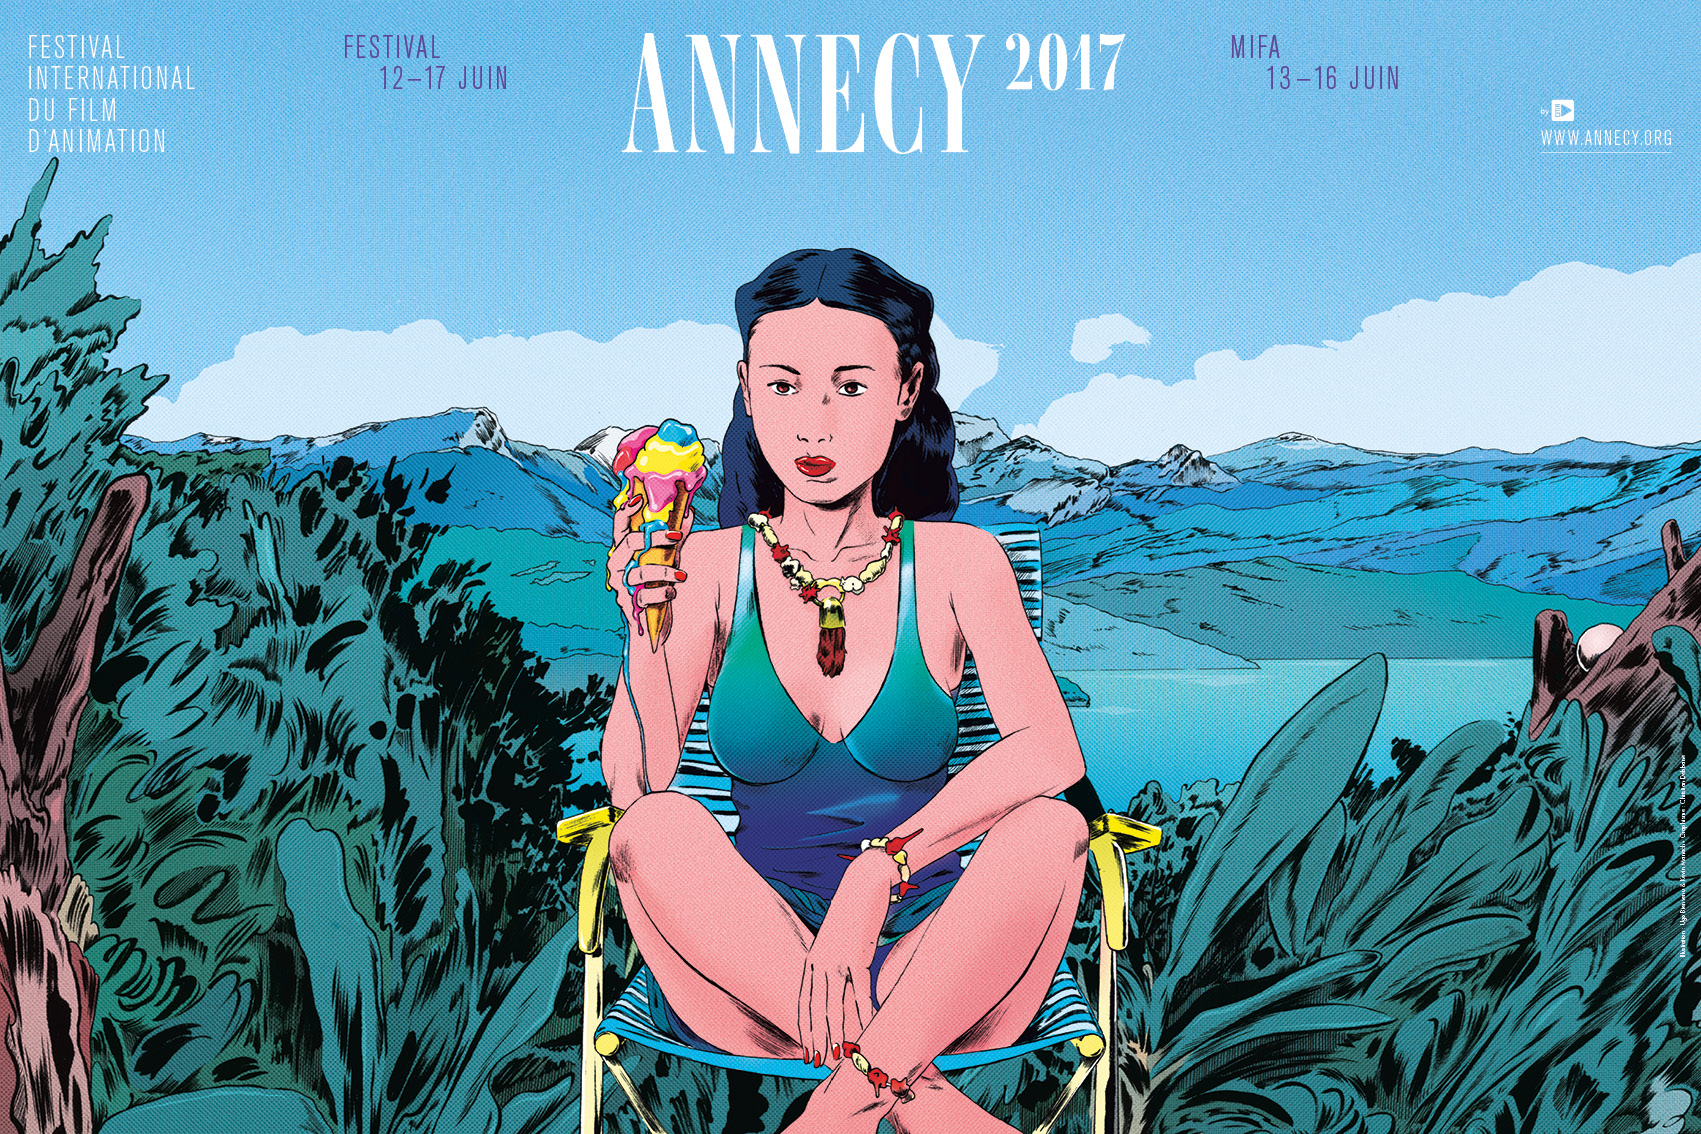 Click to enlarge image annecy2017_affiche_horizontale.jpg